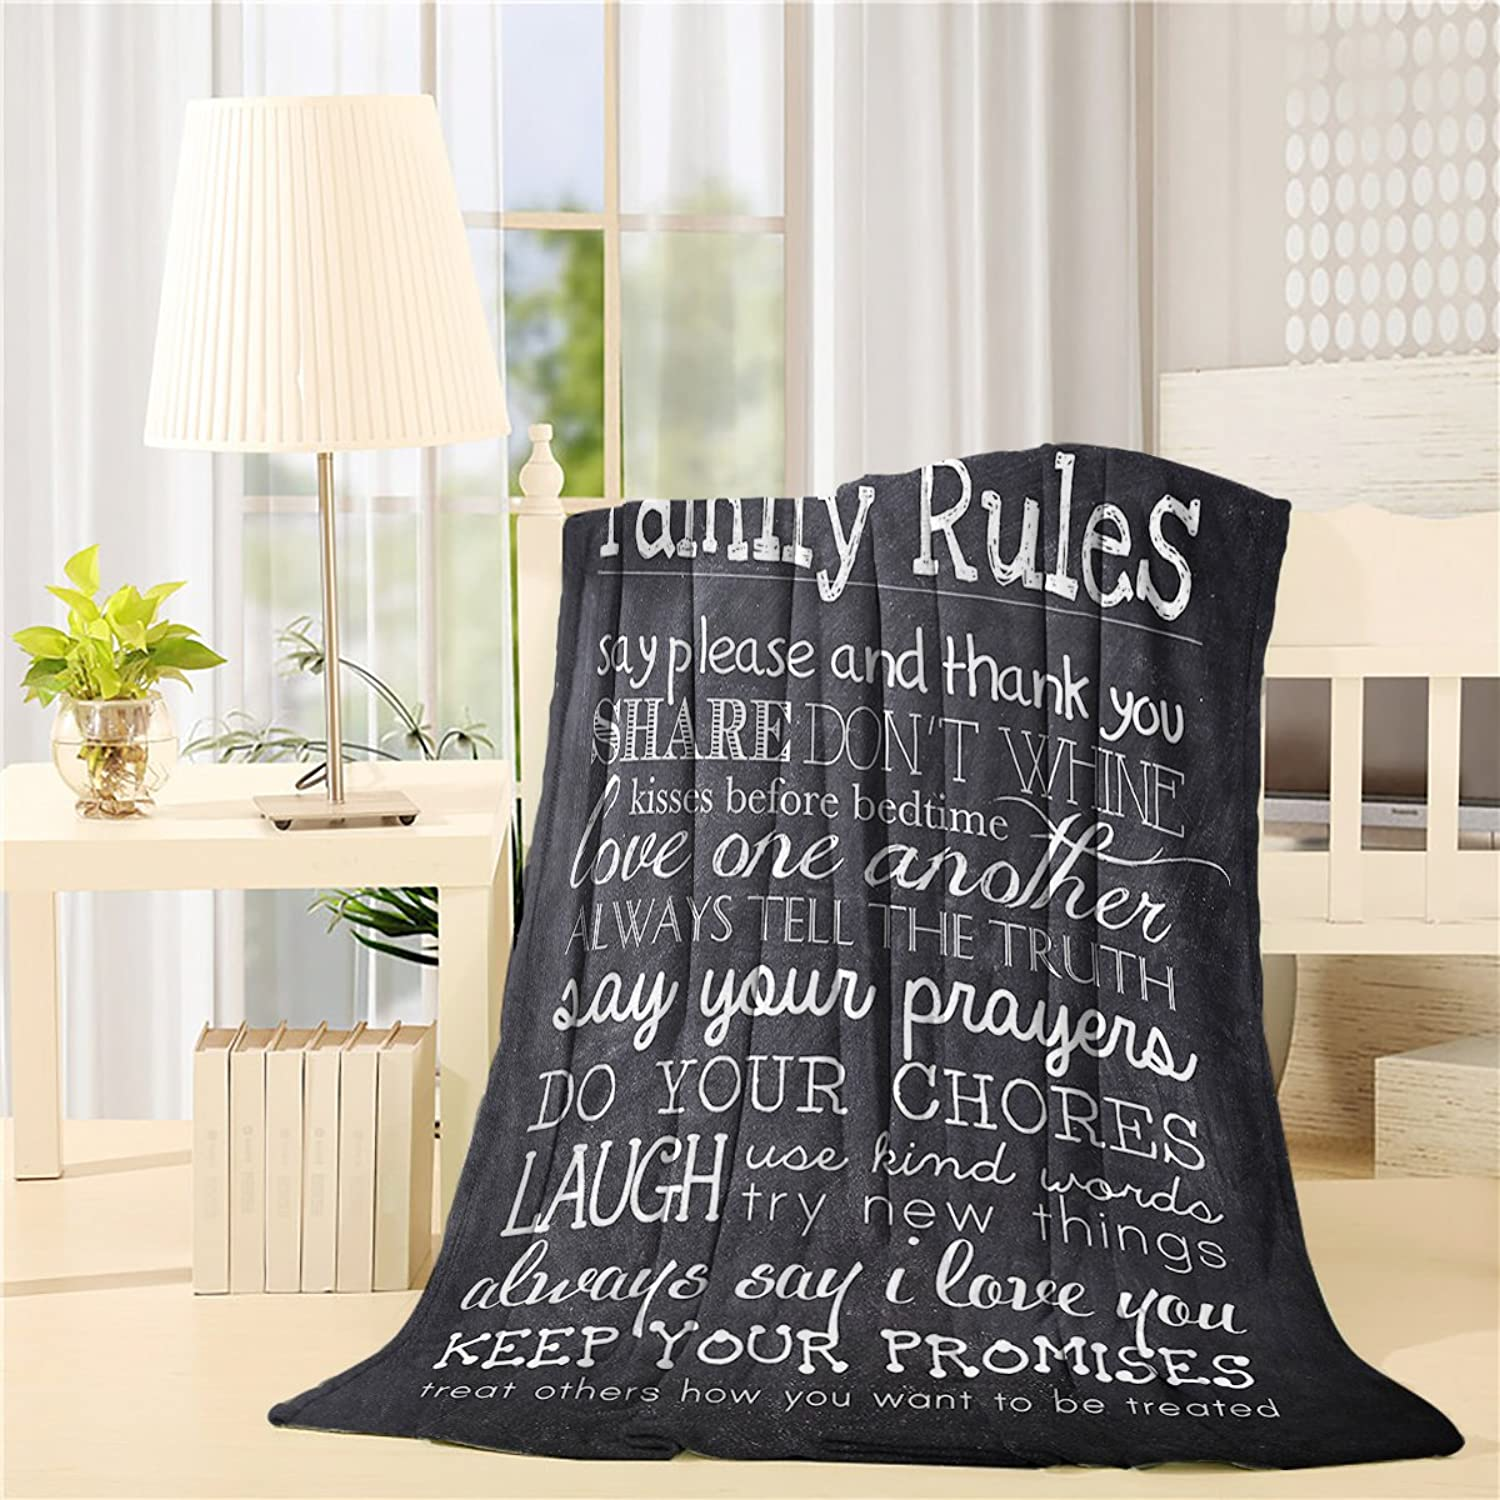 YOUNGKIDS Luxury Fleece Throw Blackets on Sofa, Family Rules Quotes Soft Plush Flannel Blanket Couch Bed Chair, 40x50inch